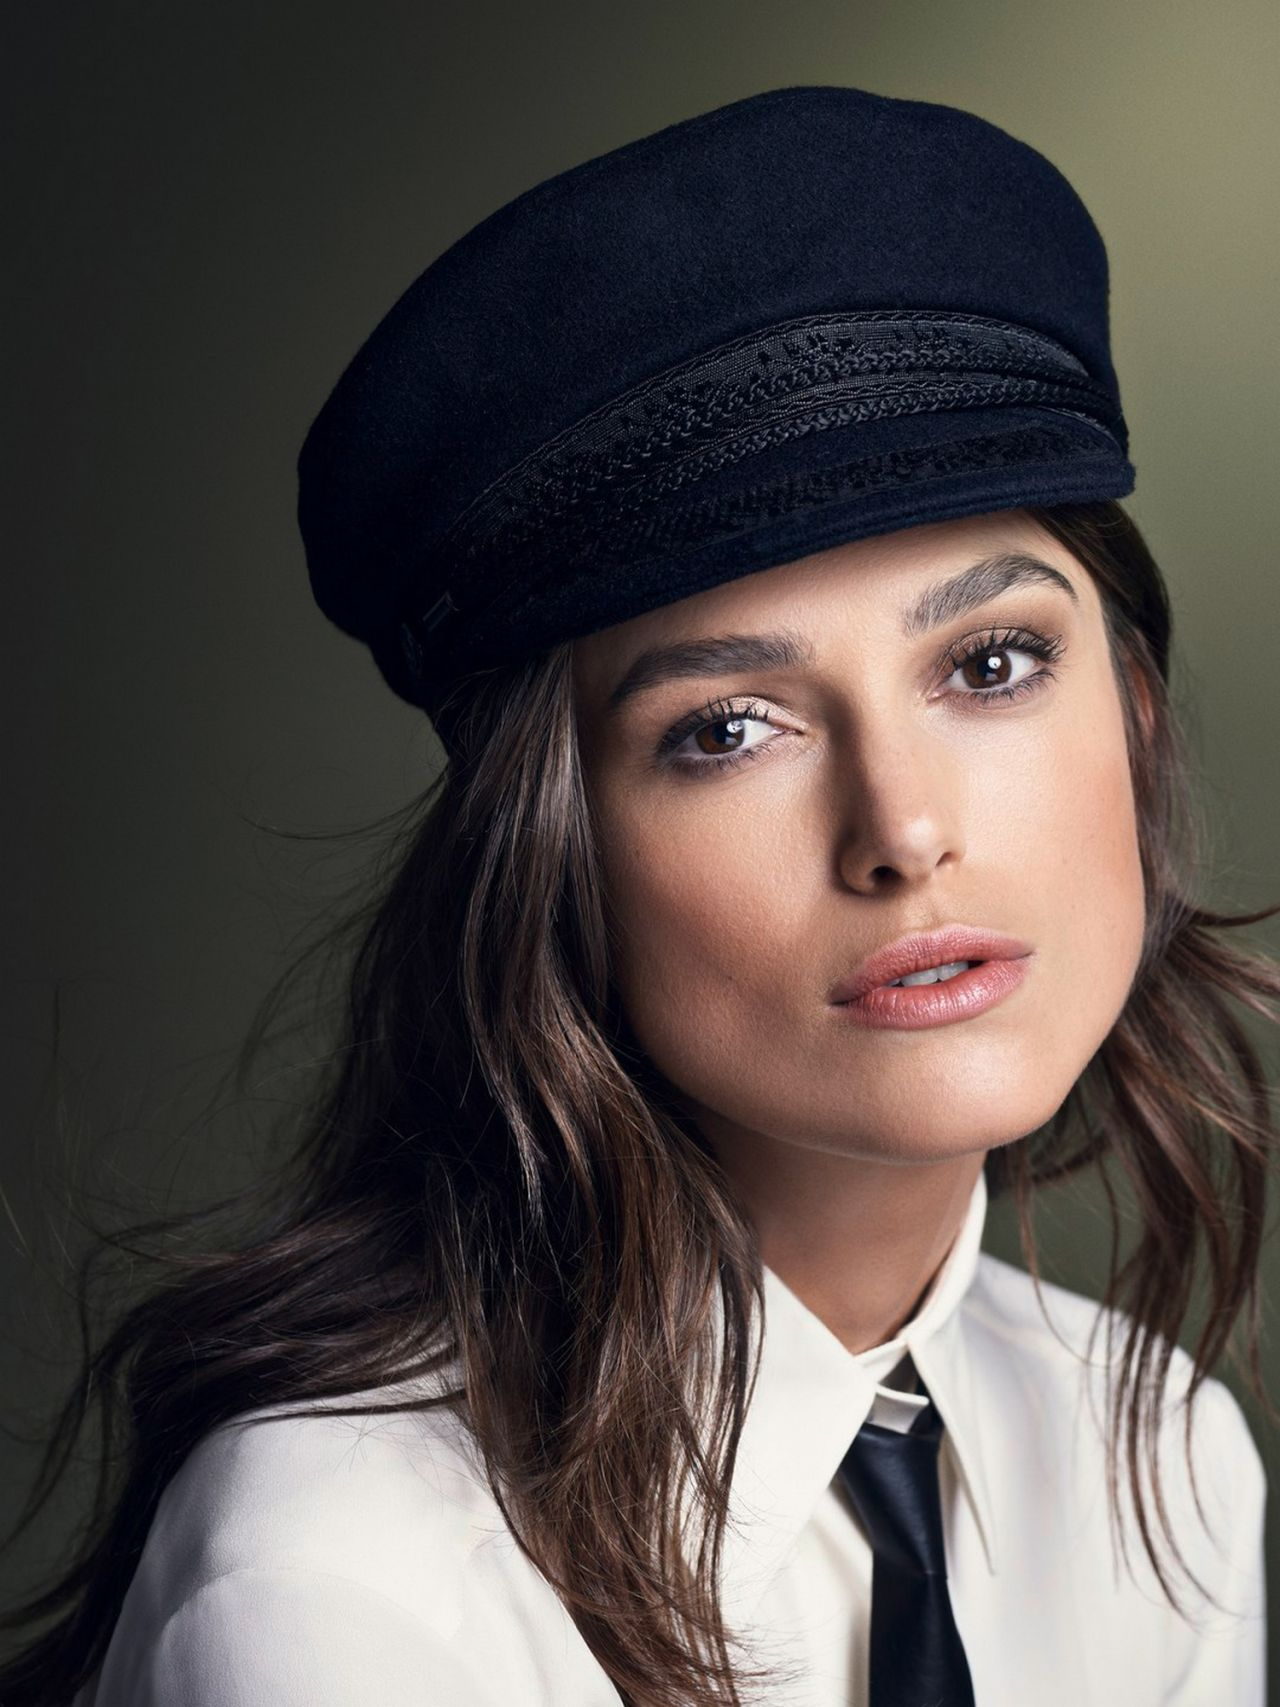 Keira Knightley – Photoshoot for Glamour Magazine November 2014